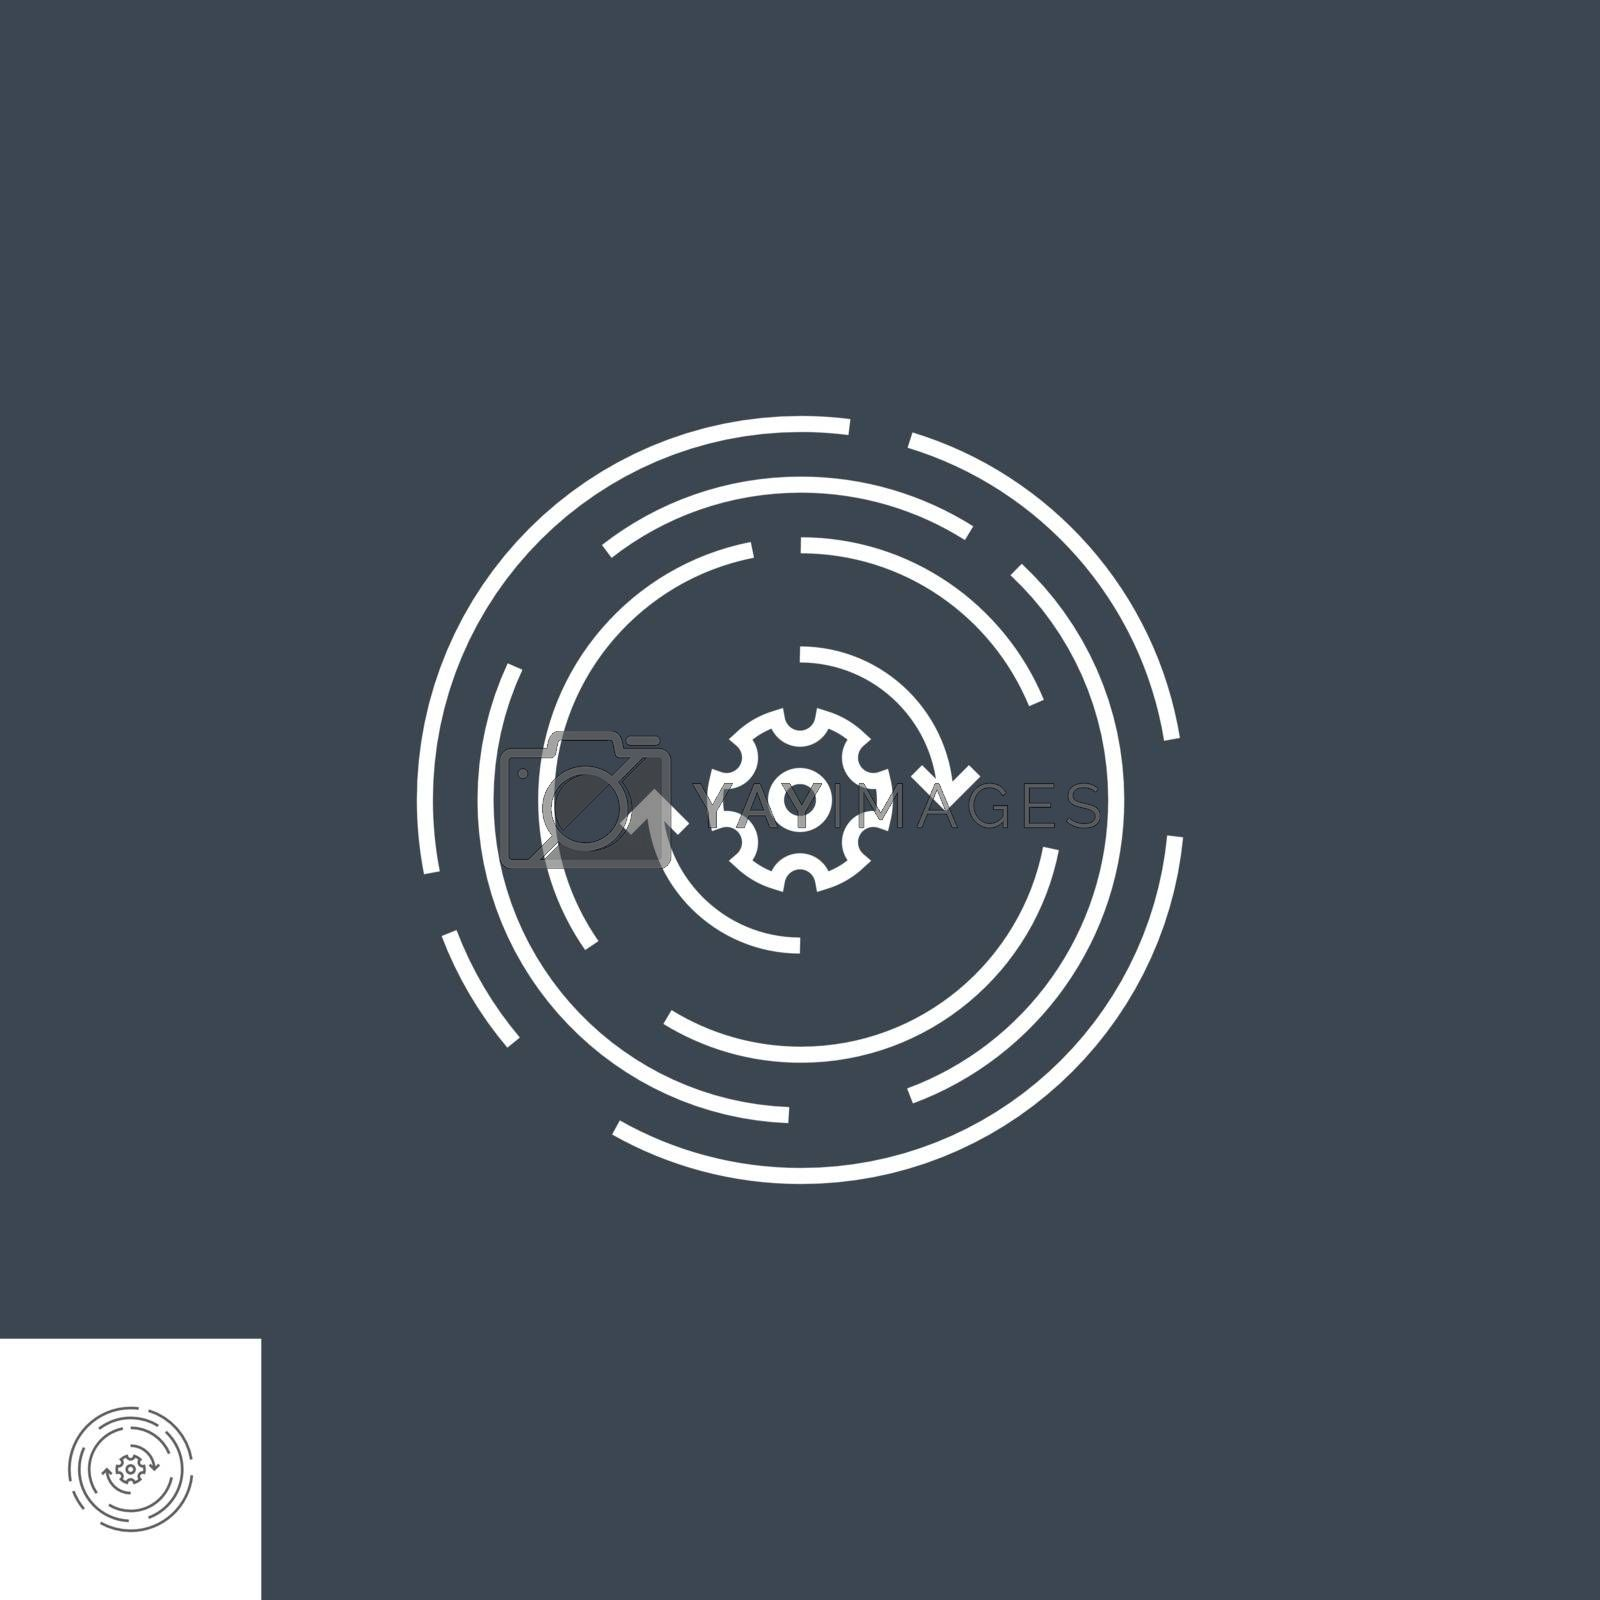 Update Related Vector Thin Line Icon. Isolated on Black Background. Editable Stroke. Vector Illustration.